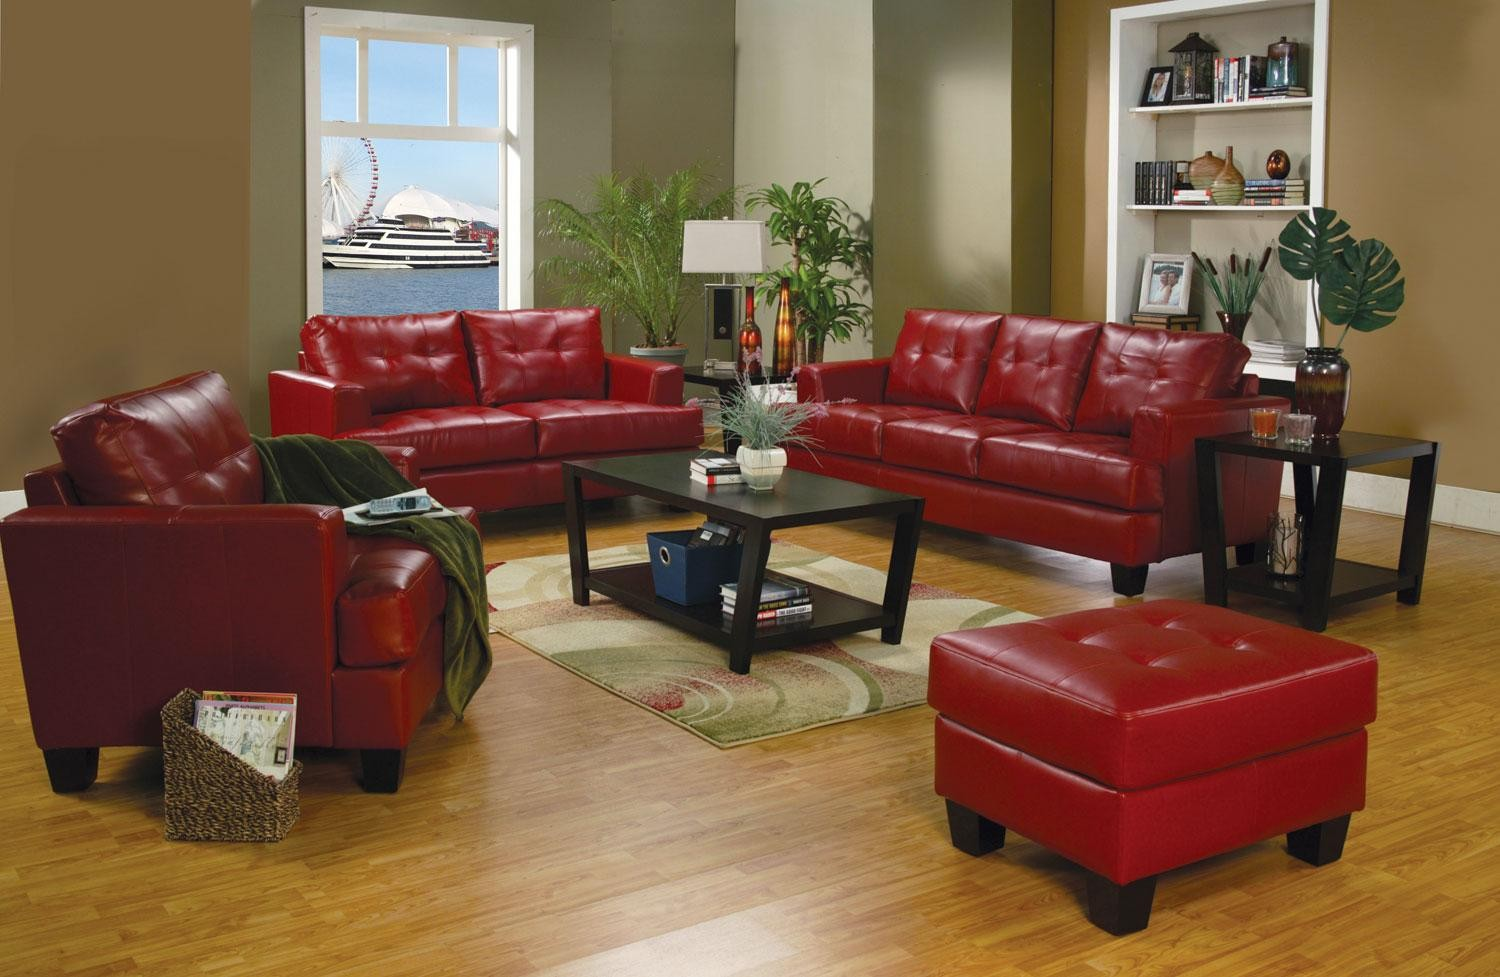 Samuel red leather living room set 501831 from coaster for Black front room furniture